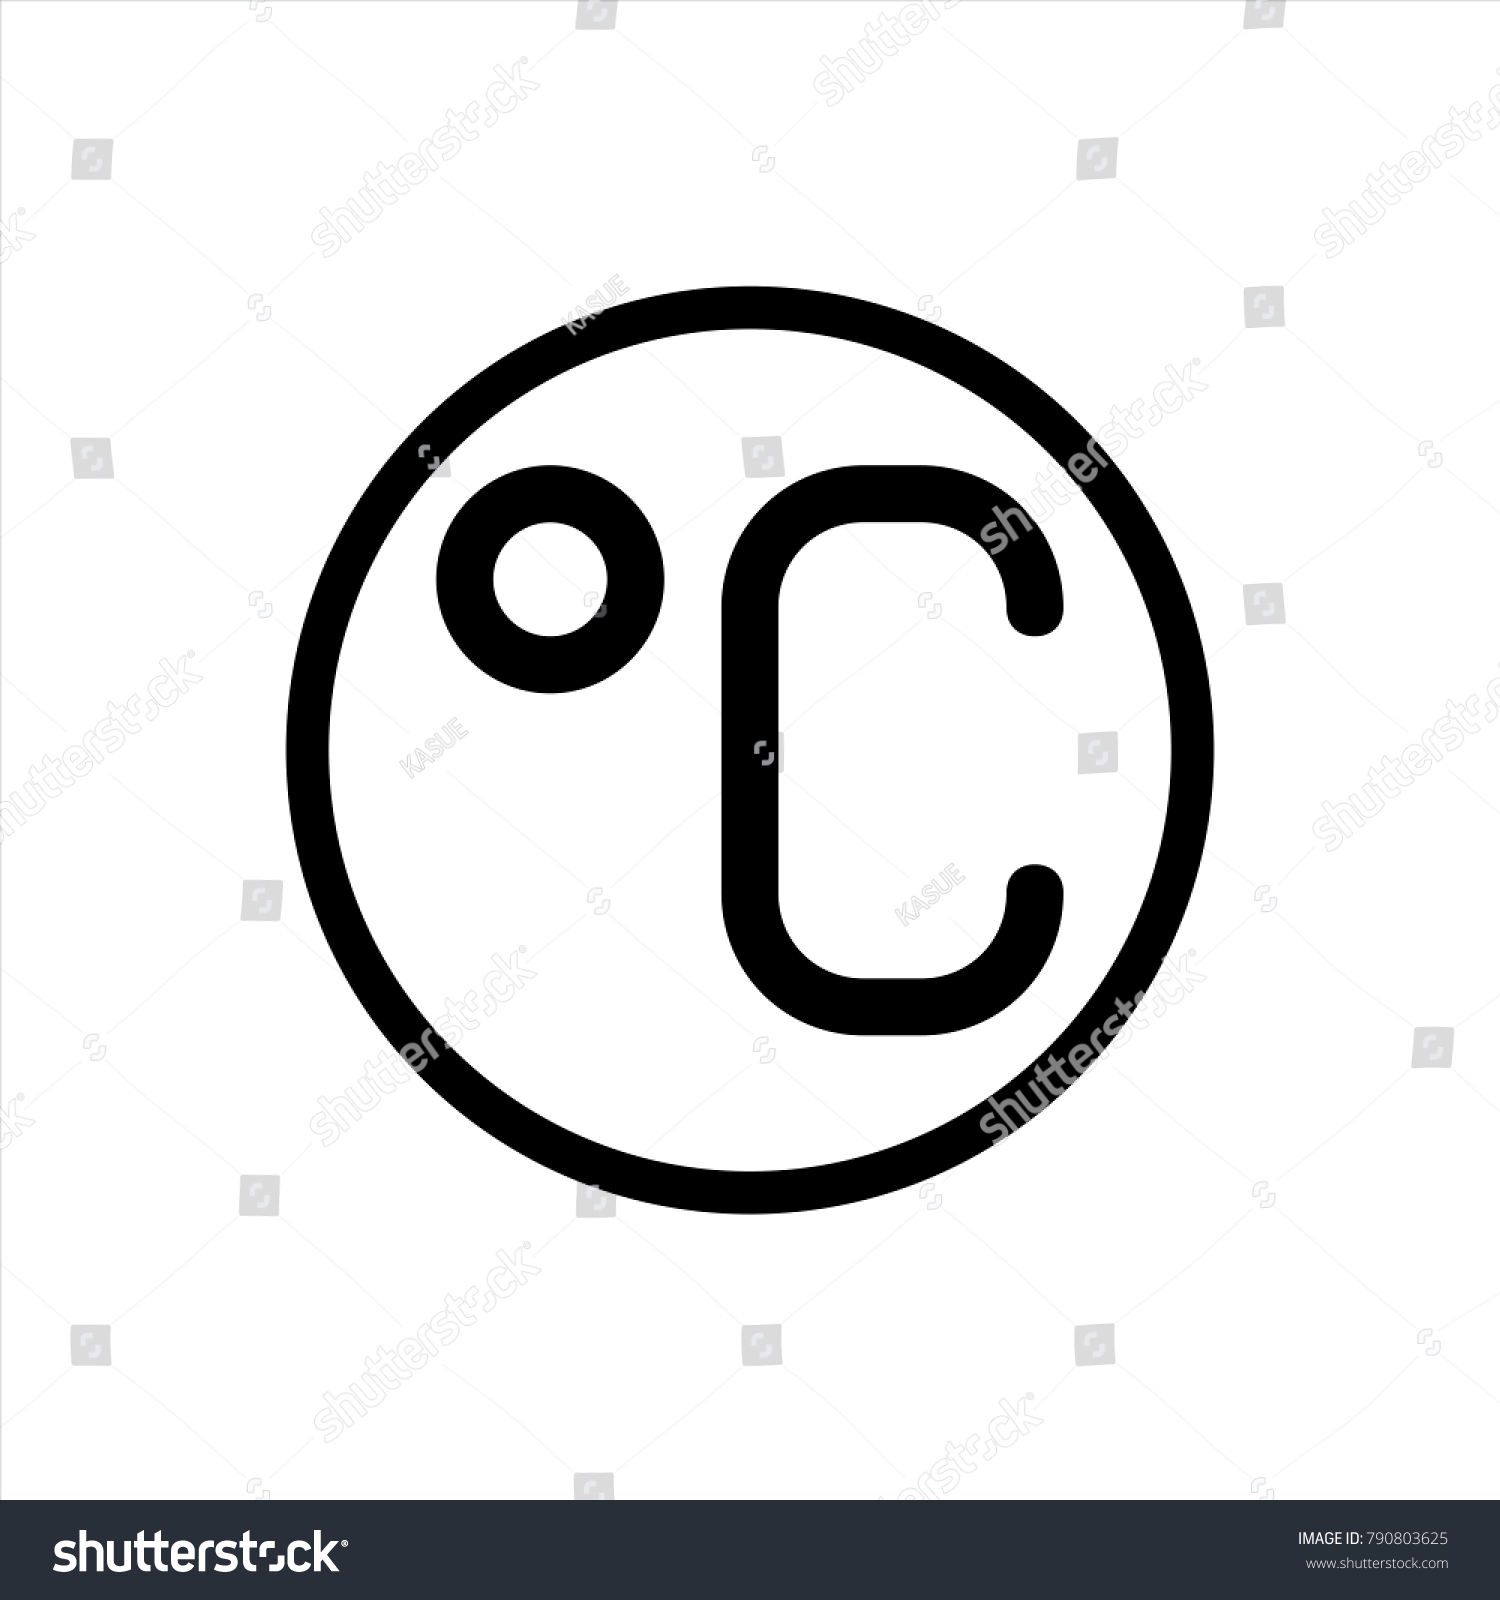 Degree symbol in text image collections symbols and meanings degree celsius icon trendy flat style stock vector 790803625 degree celsius icon in trendy flat style biocorpaavc Image collections